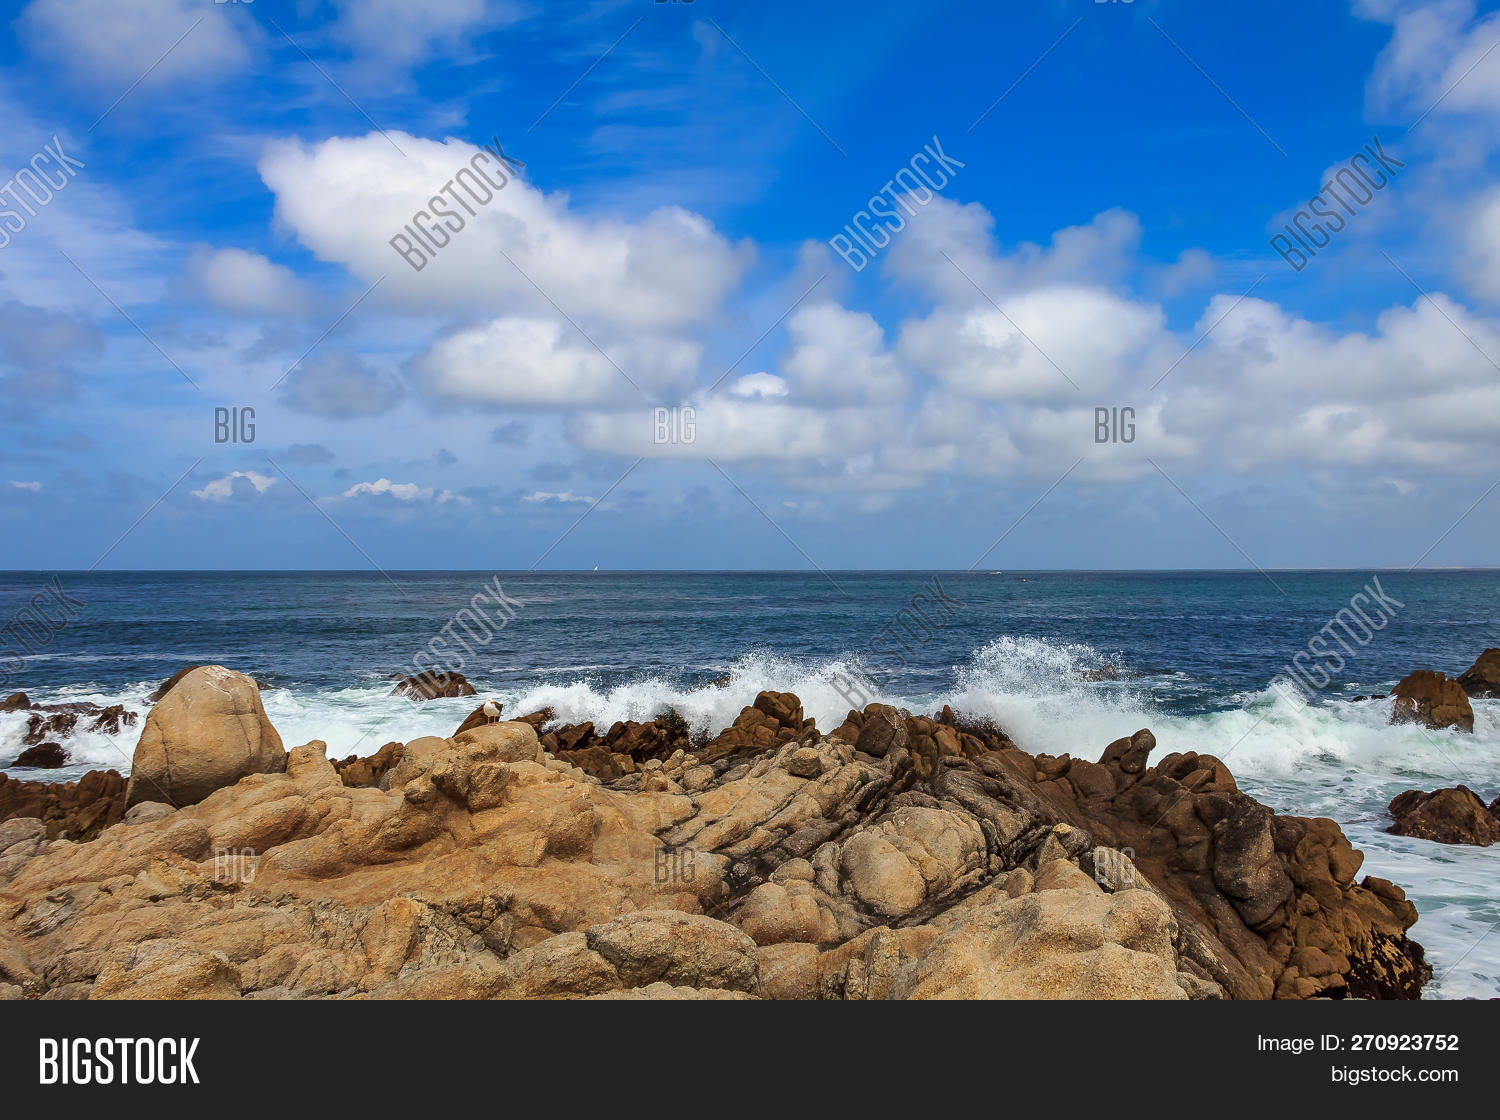 Pacific Ocean Waves Image & Photo (Free Trial) | Bigstock